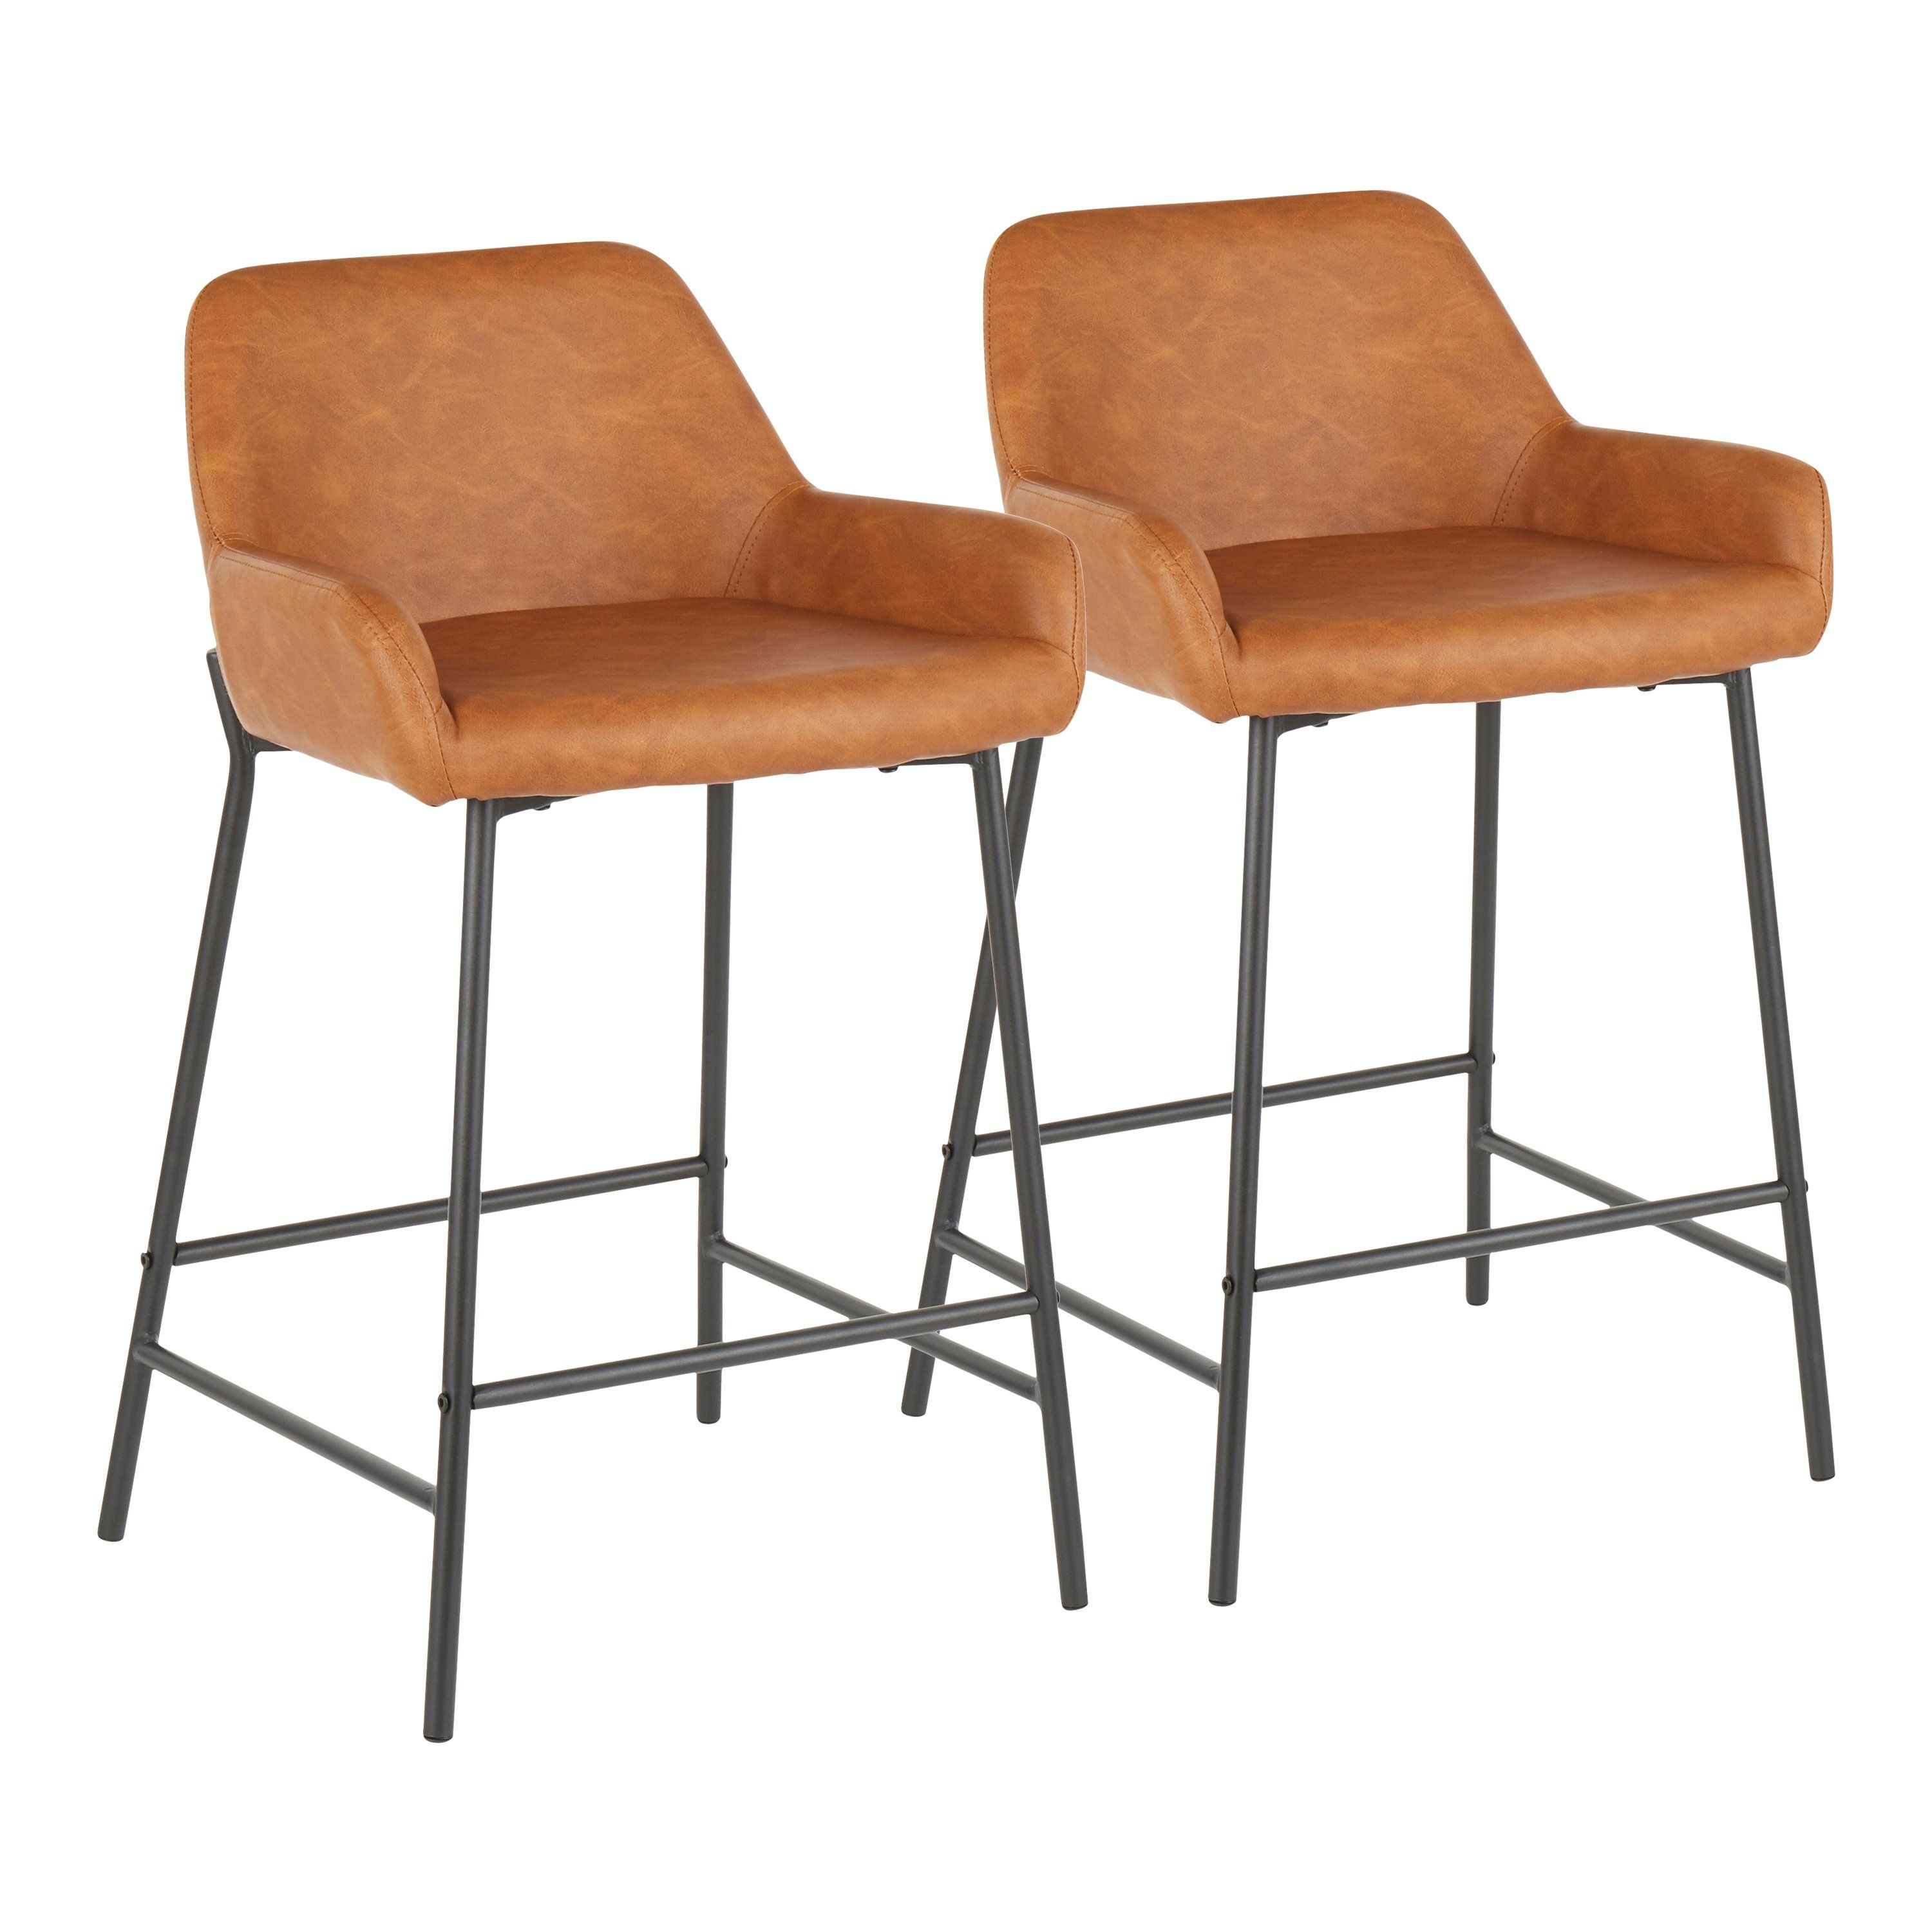 Brown And Black Faux Leather Counter Height Stool Set Of 2